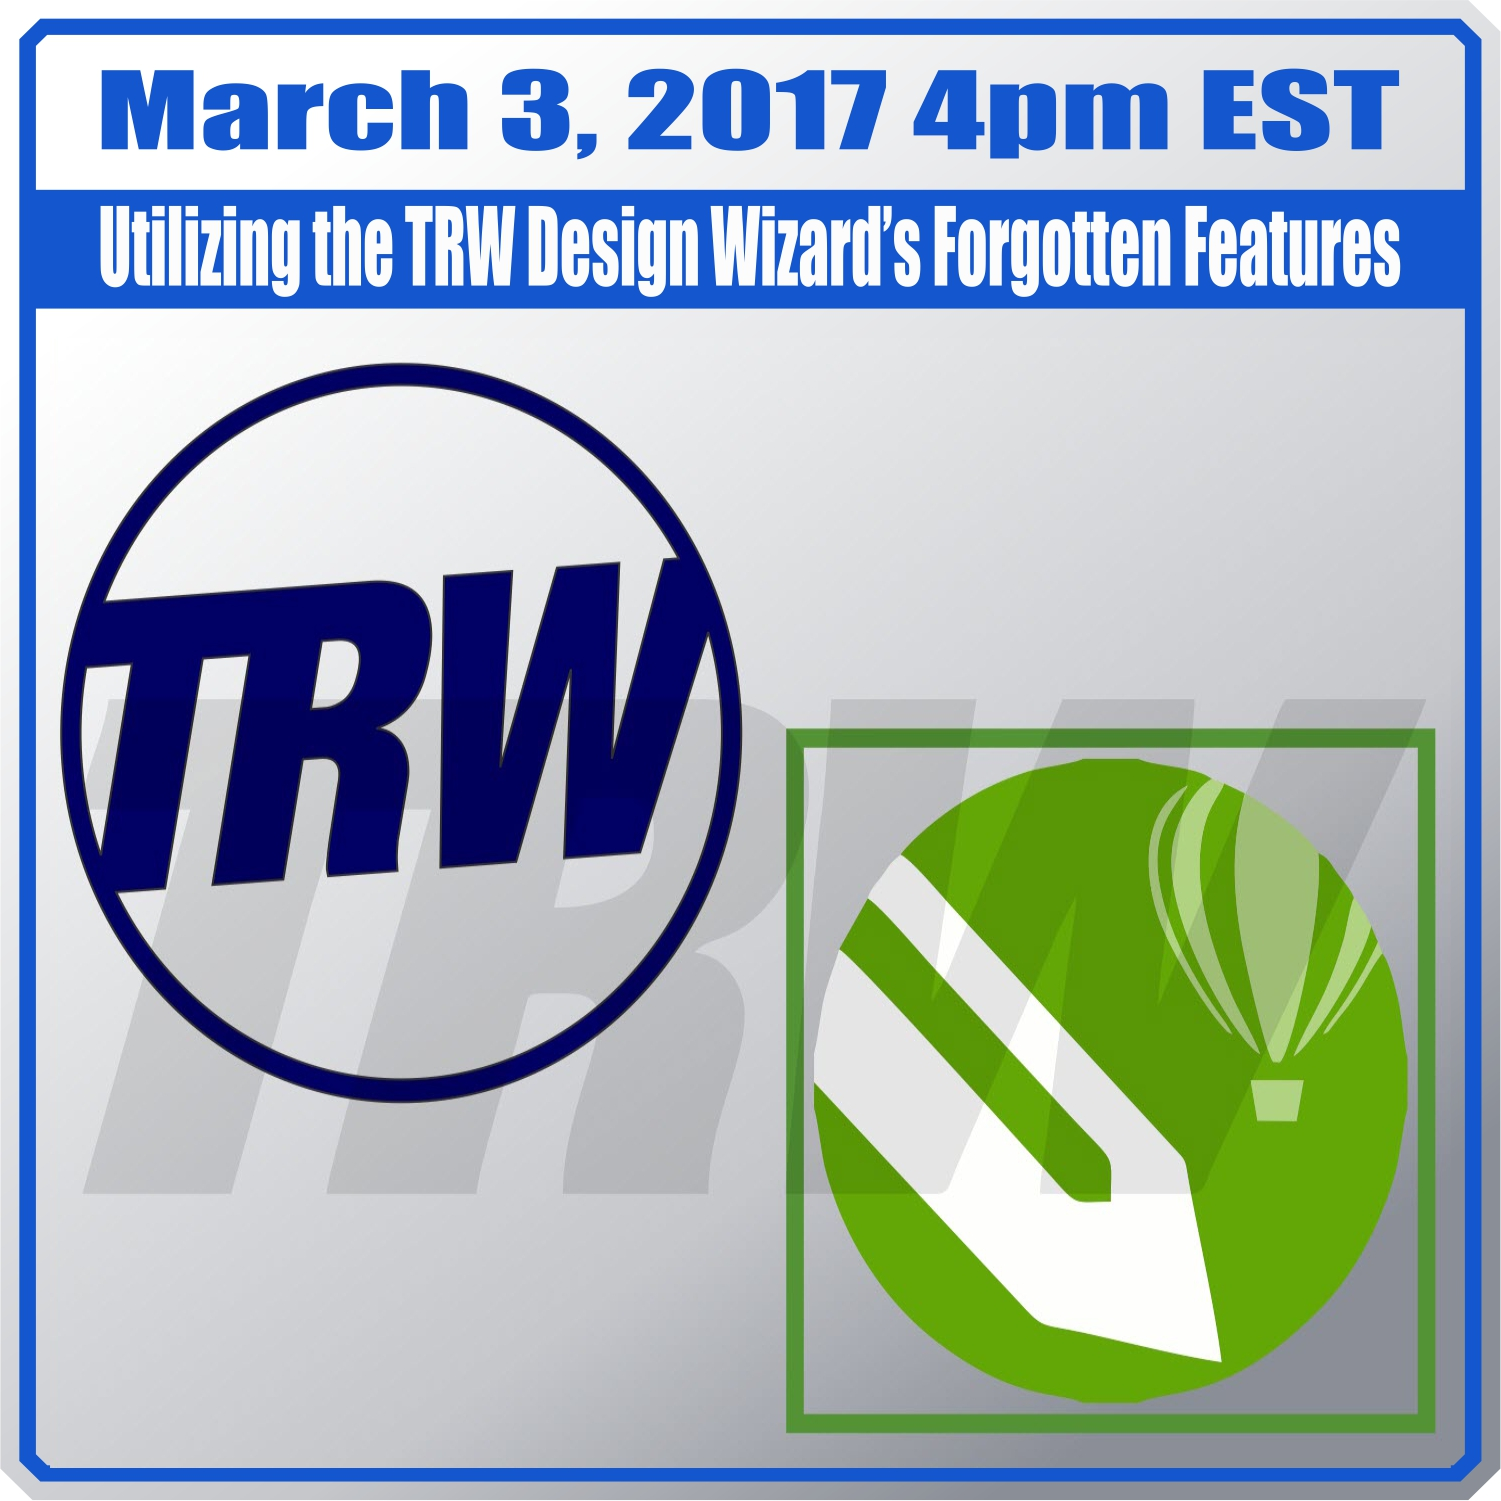 Utilizing the TRW Design Wizard's Forgotten Features - March 3rd, 2017